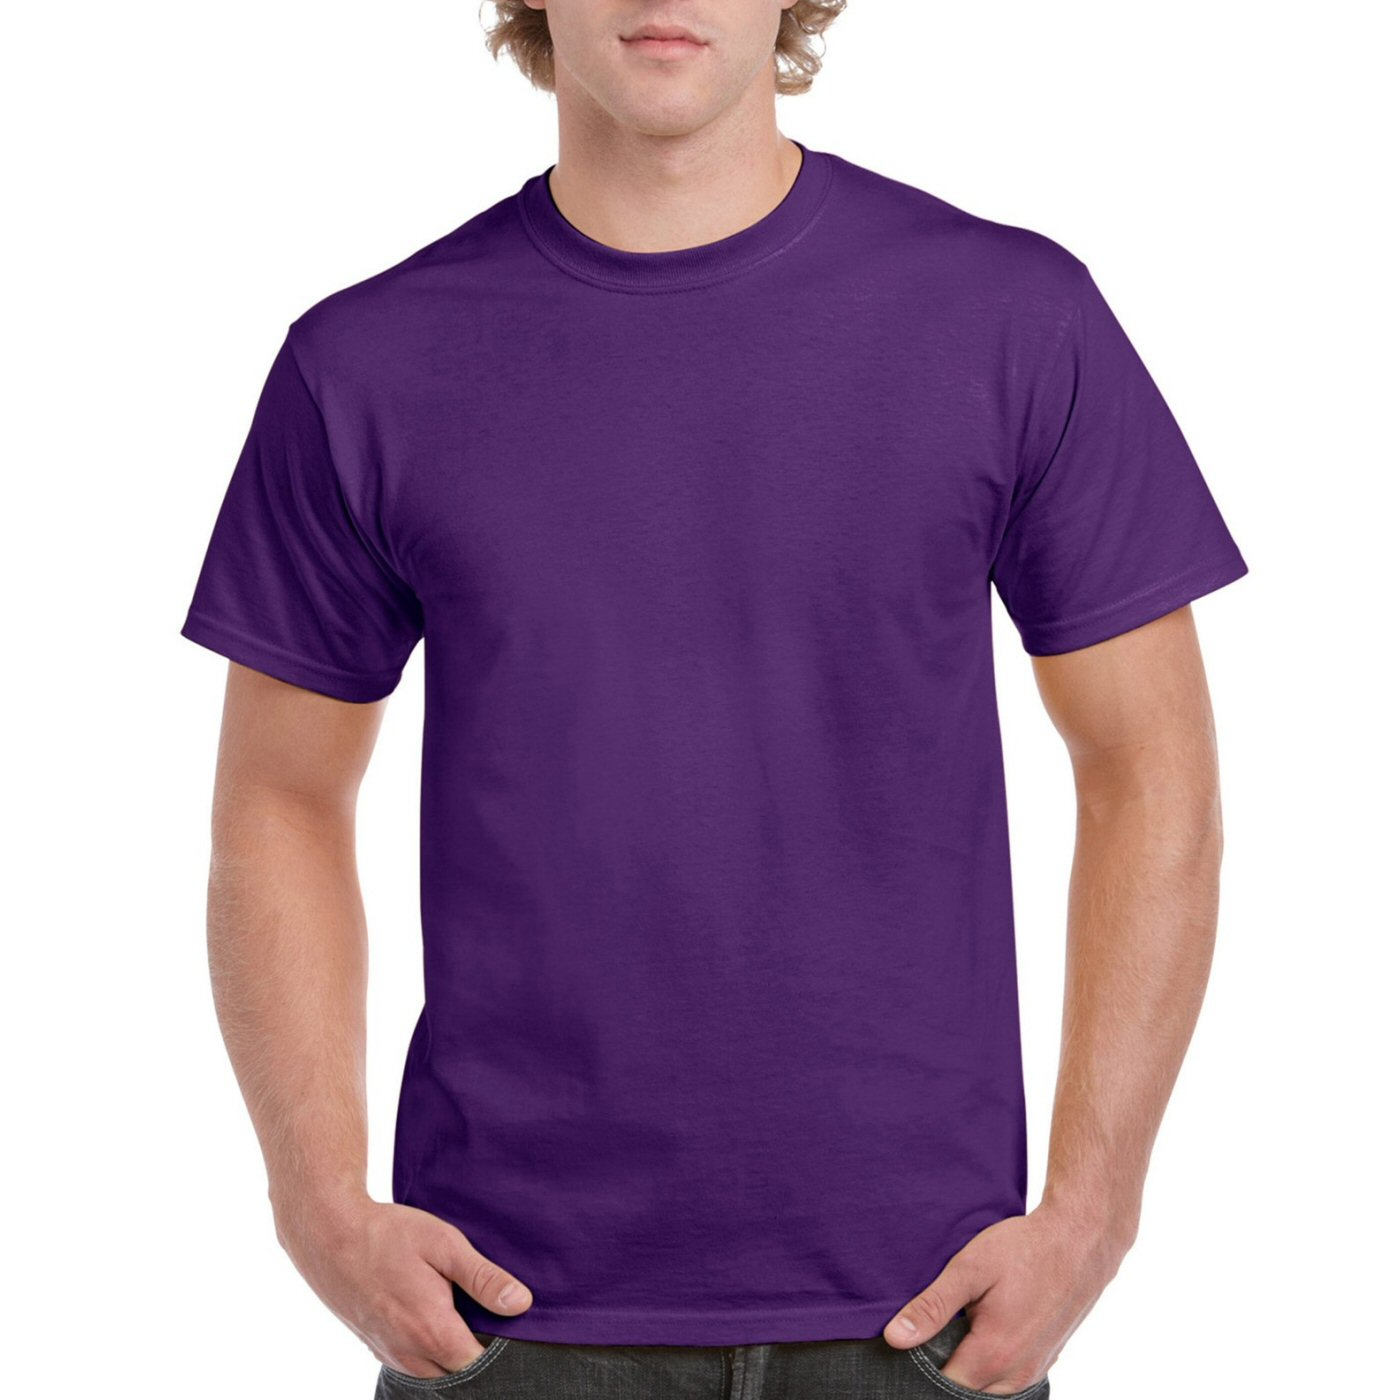 Purple Plain Round Neck T-shirt image